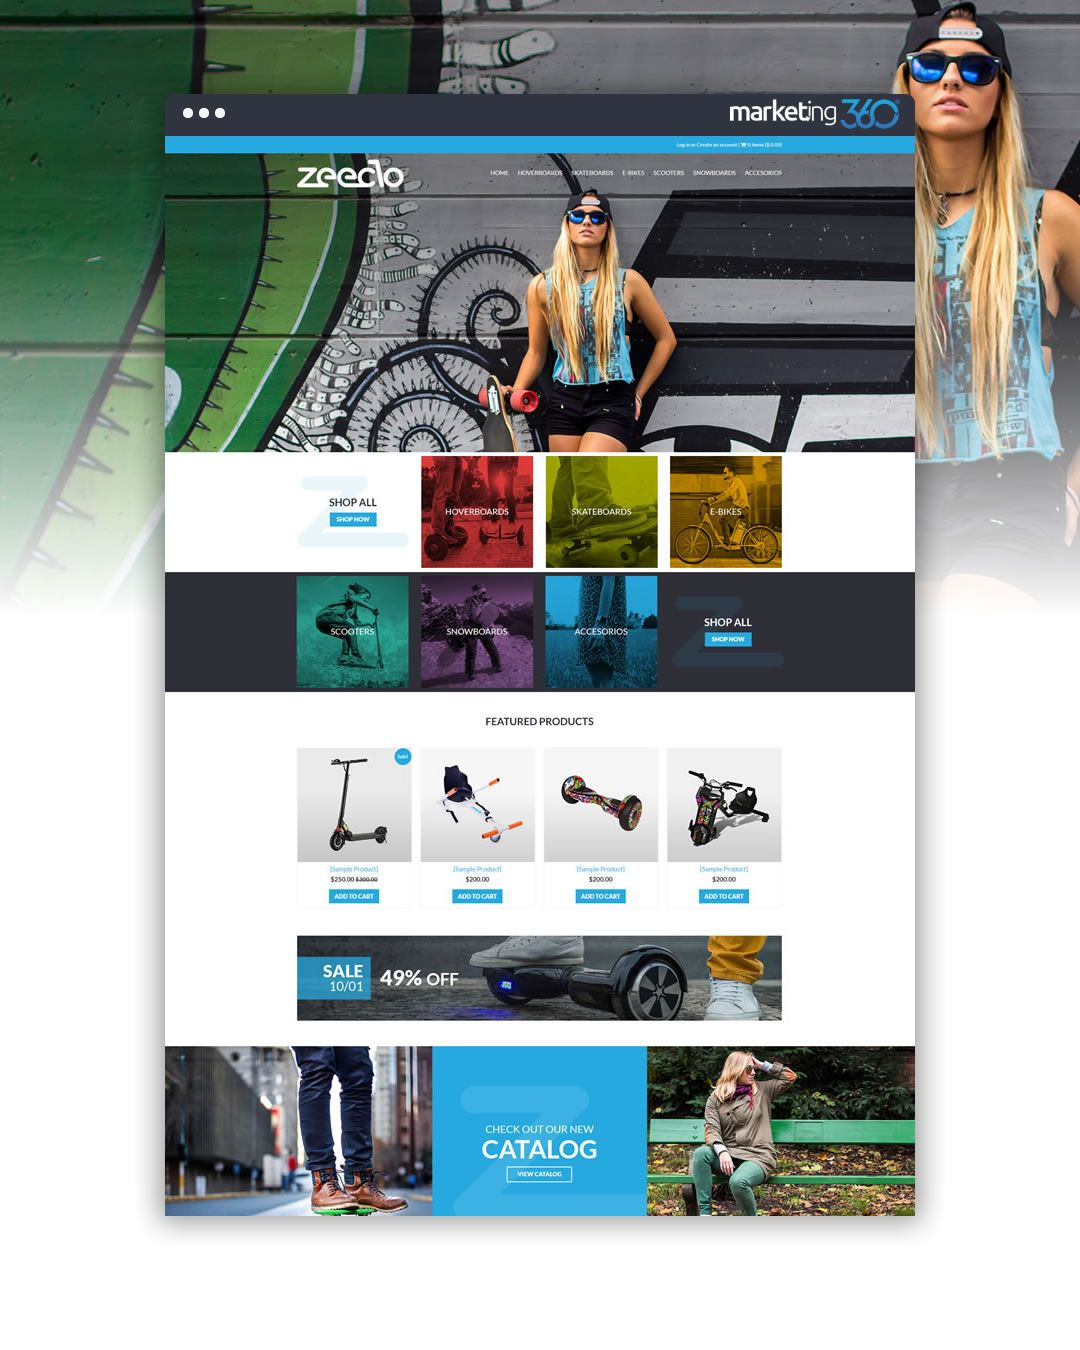 eCommerce website design of the day by eCommerce Marketing 360 ...